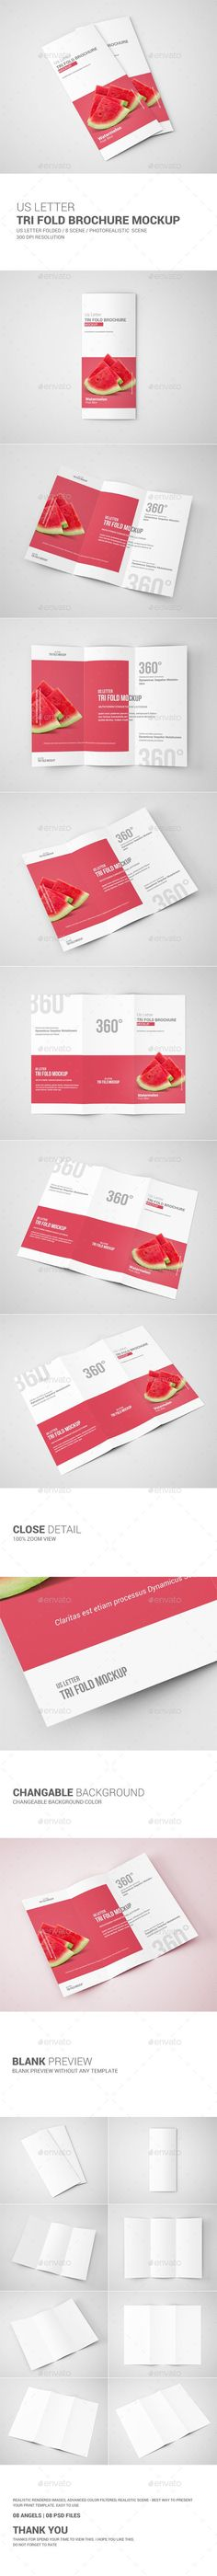 A Beautiful Multipurpose Tri-Fold DL Brochure Template InDesign - blank tri fold brochure template